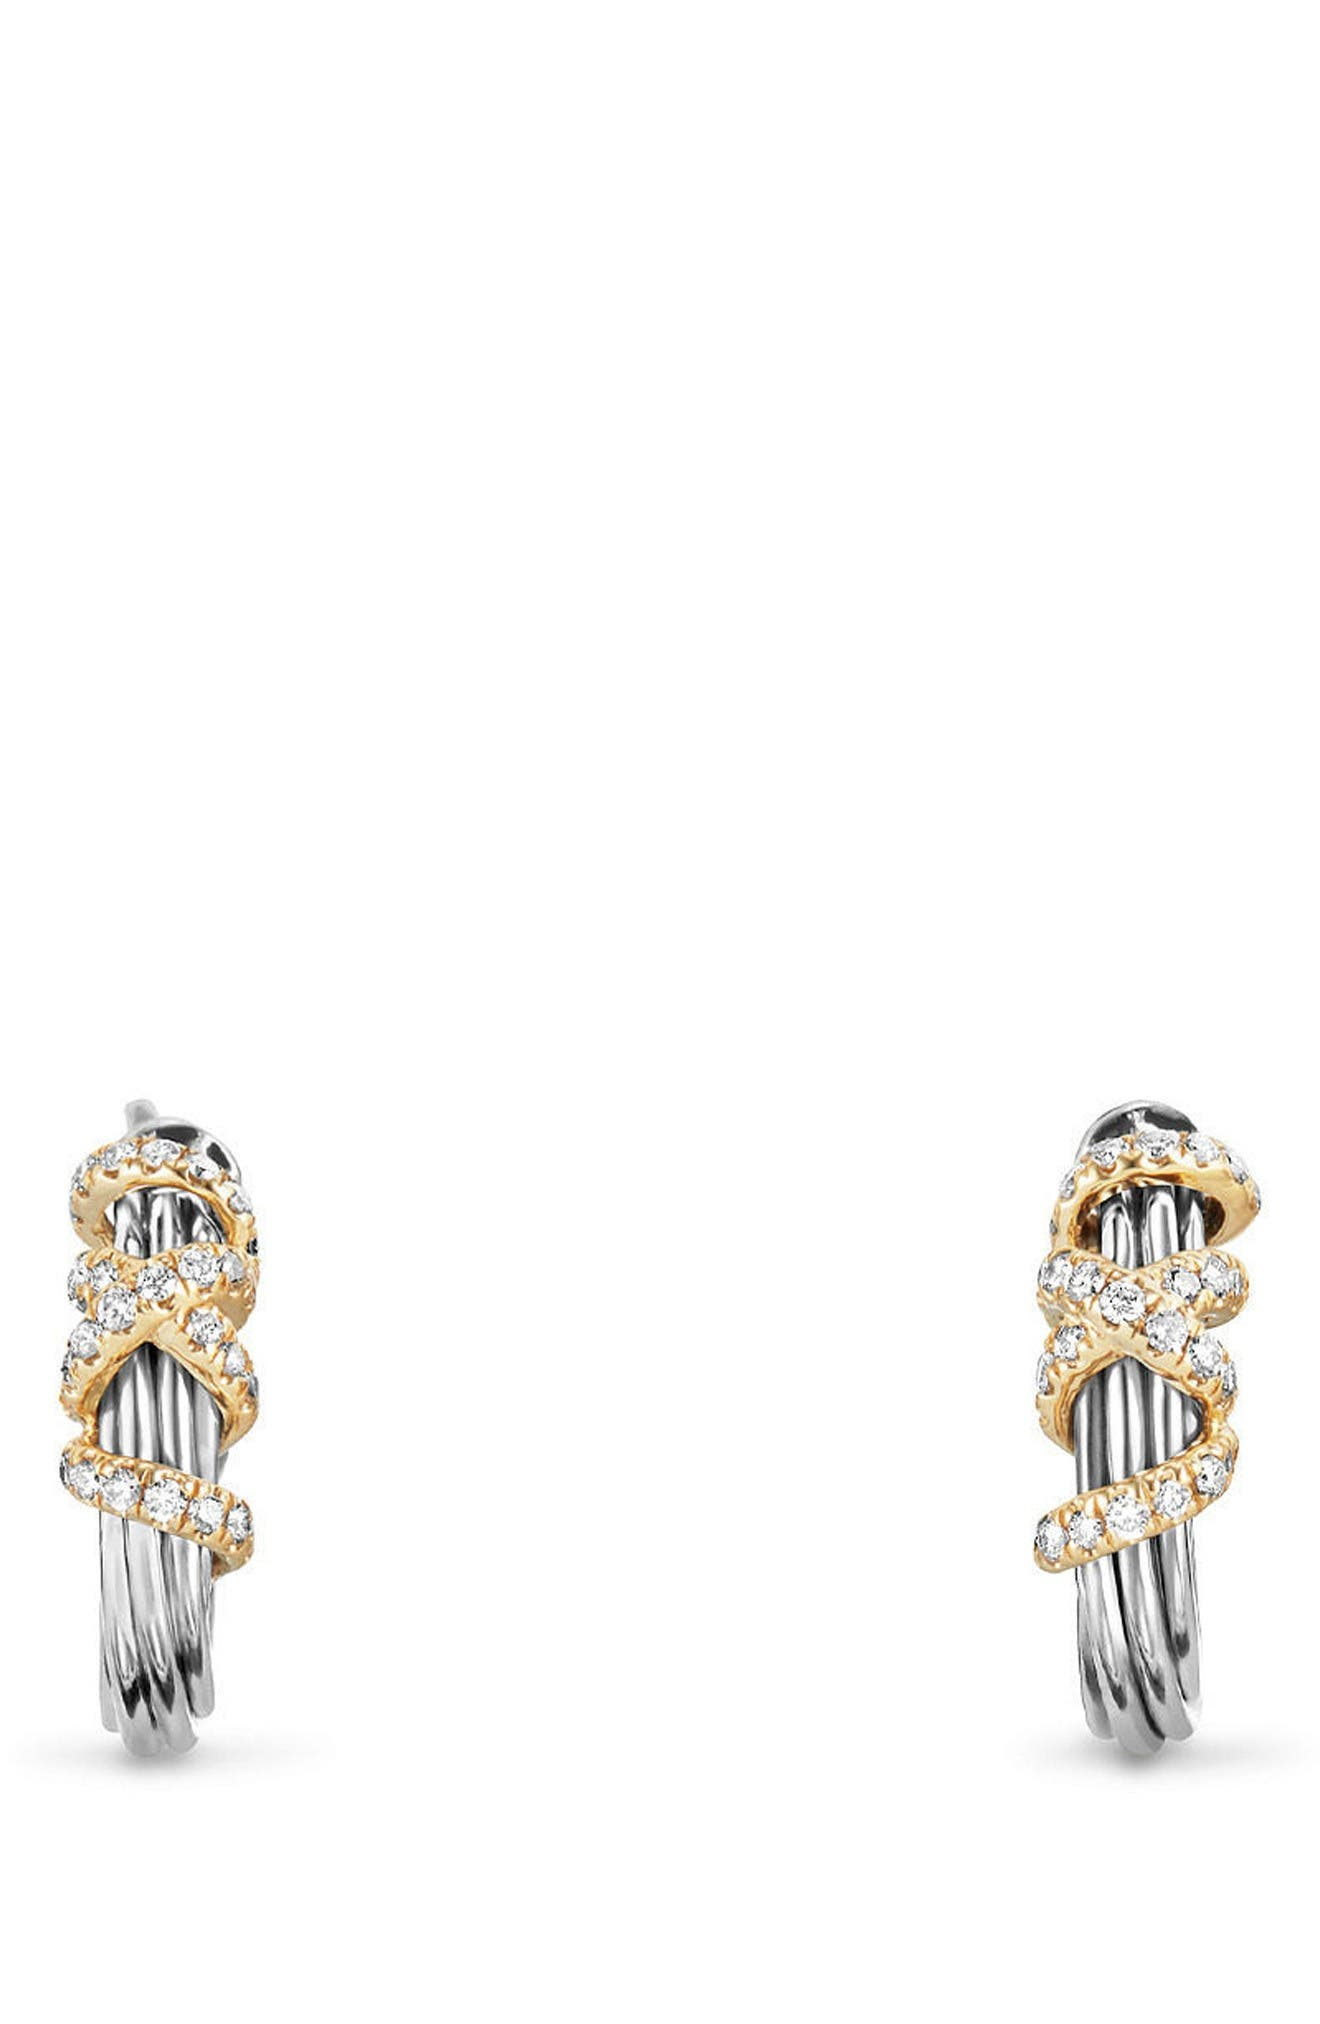 Main Image - Helena Small Hoop Earrings with Diamonds & 18K Gold